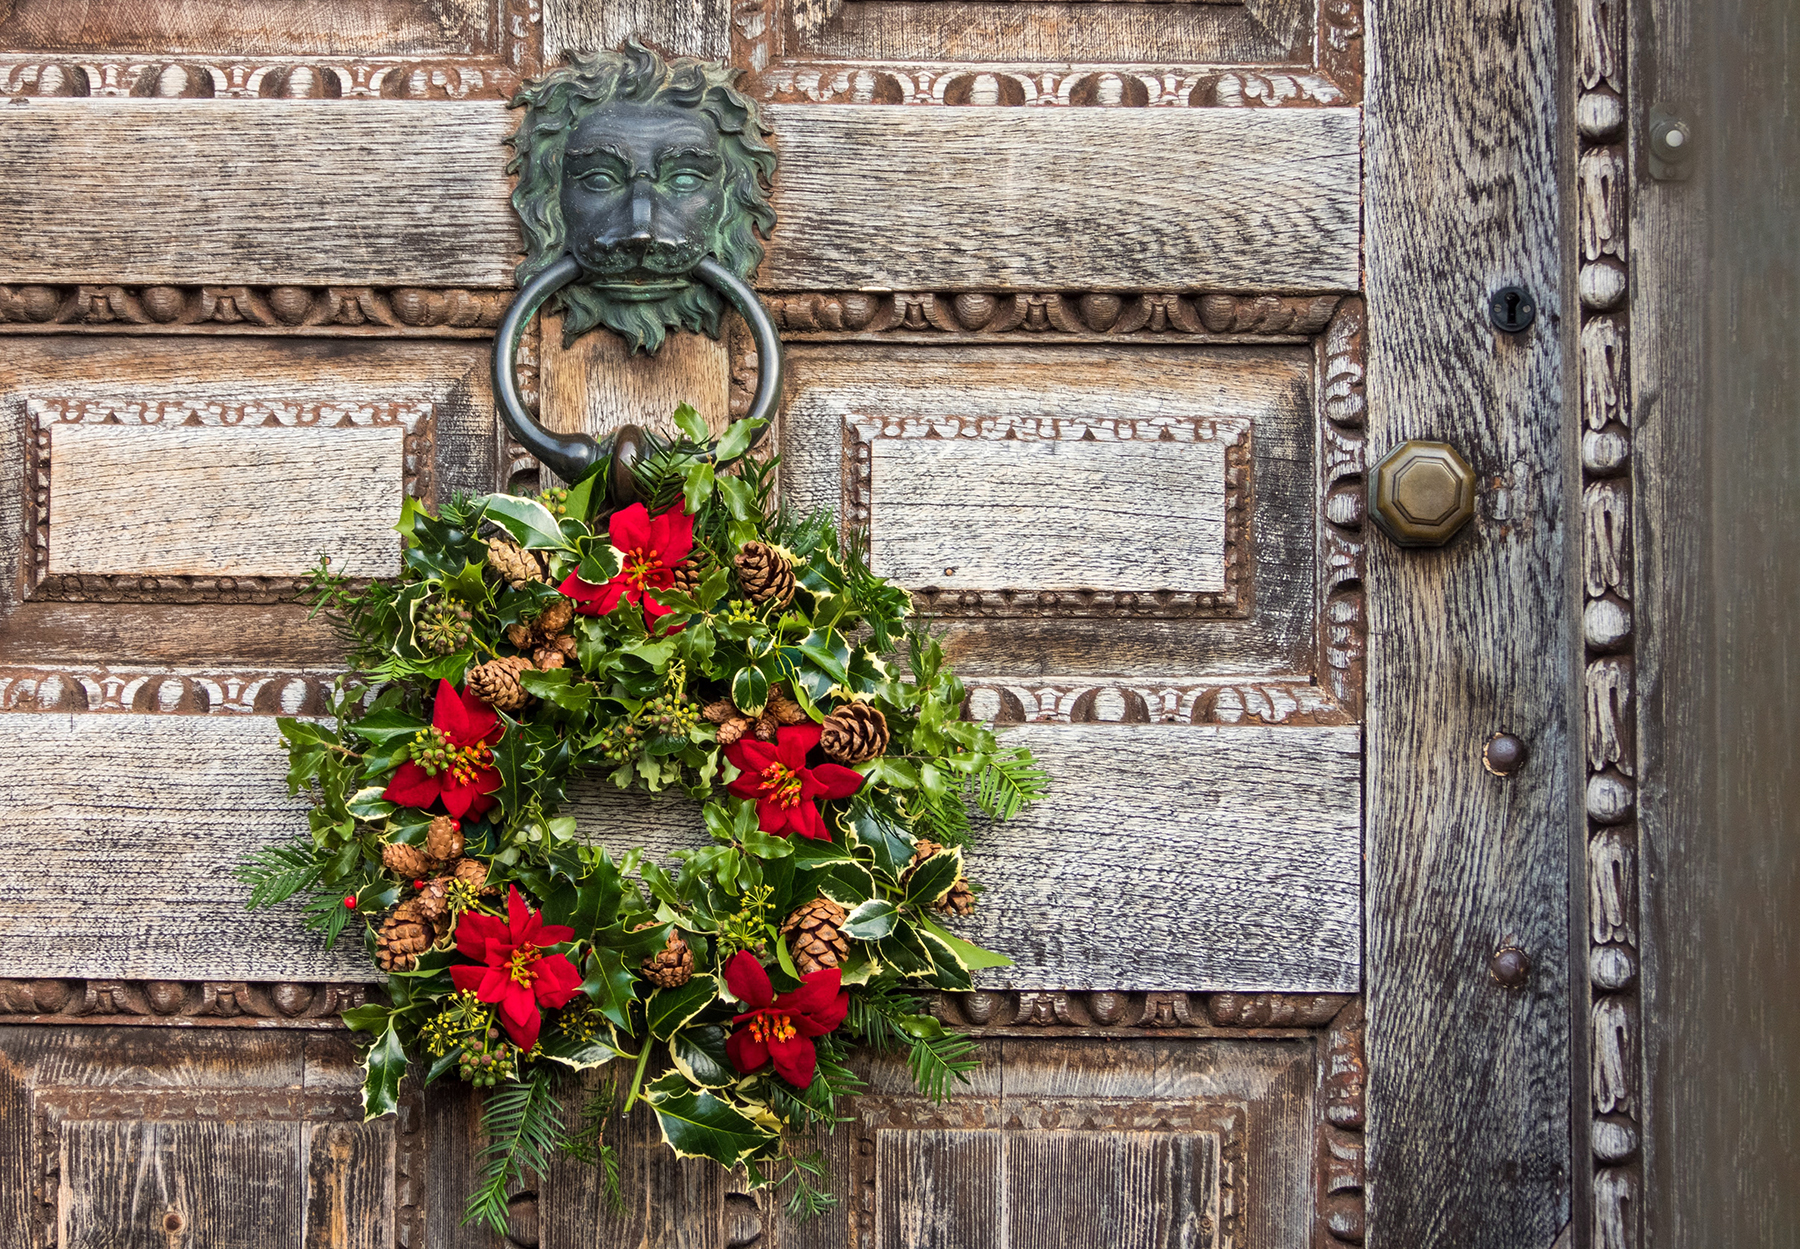 Don't Let the Doorway Effect Make You Forget Christmas